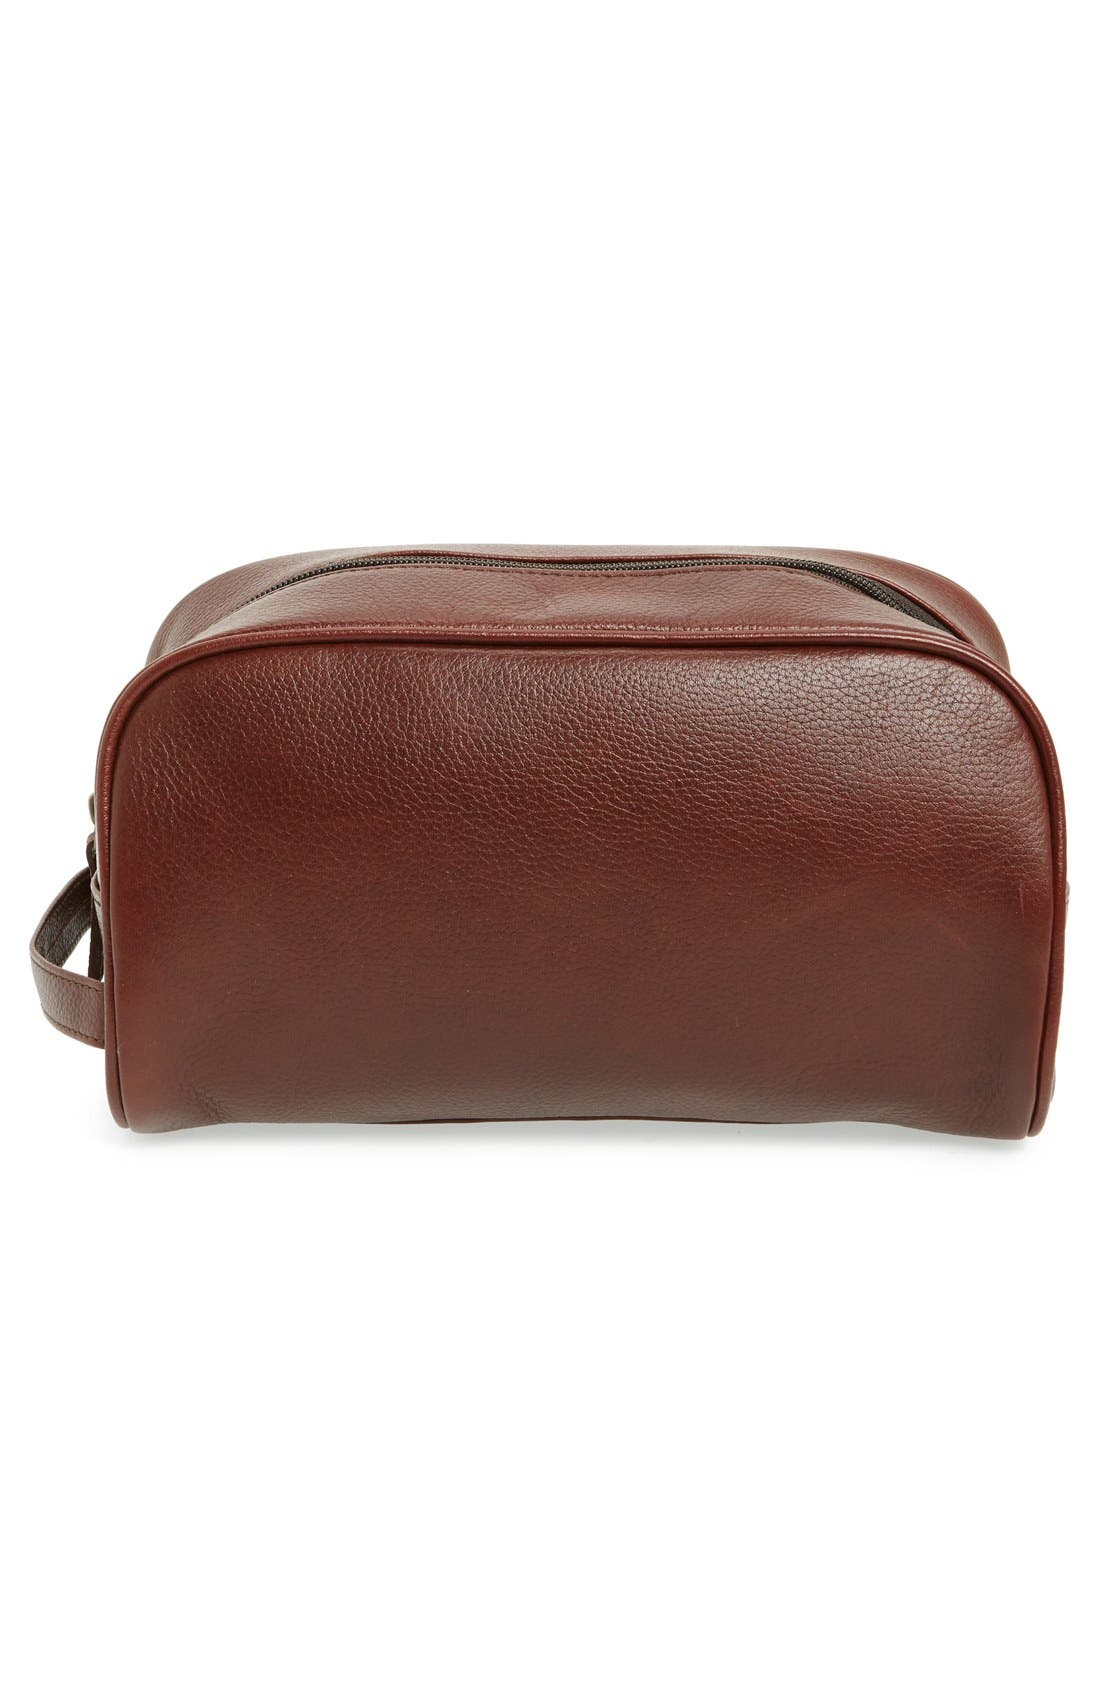 Leather Travel Kit,                             Alternate thumbnail 4, color,                             DARK BROWN